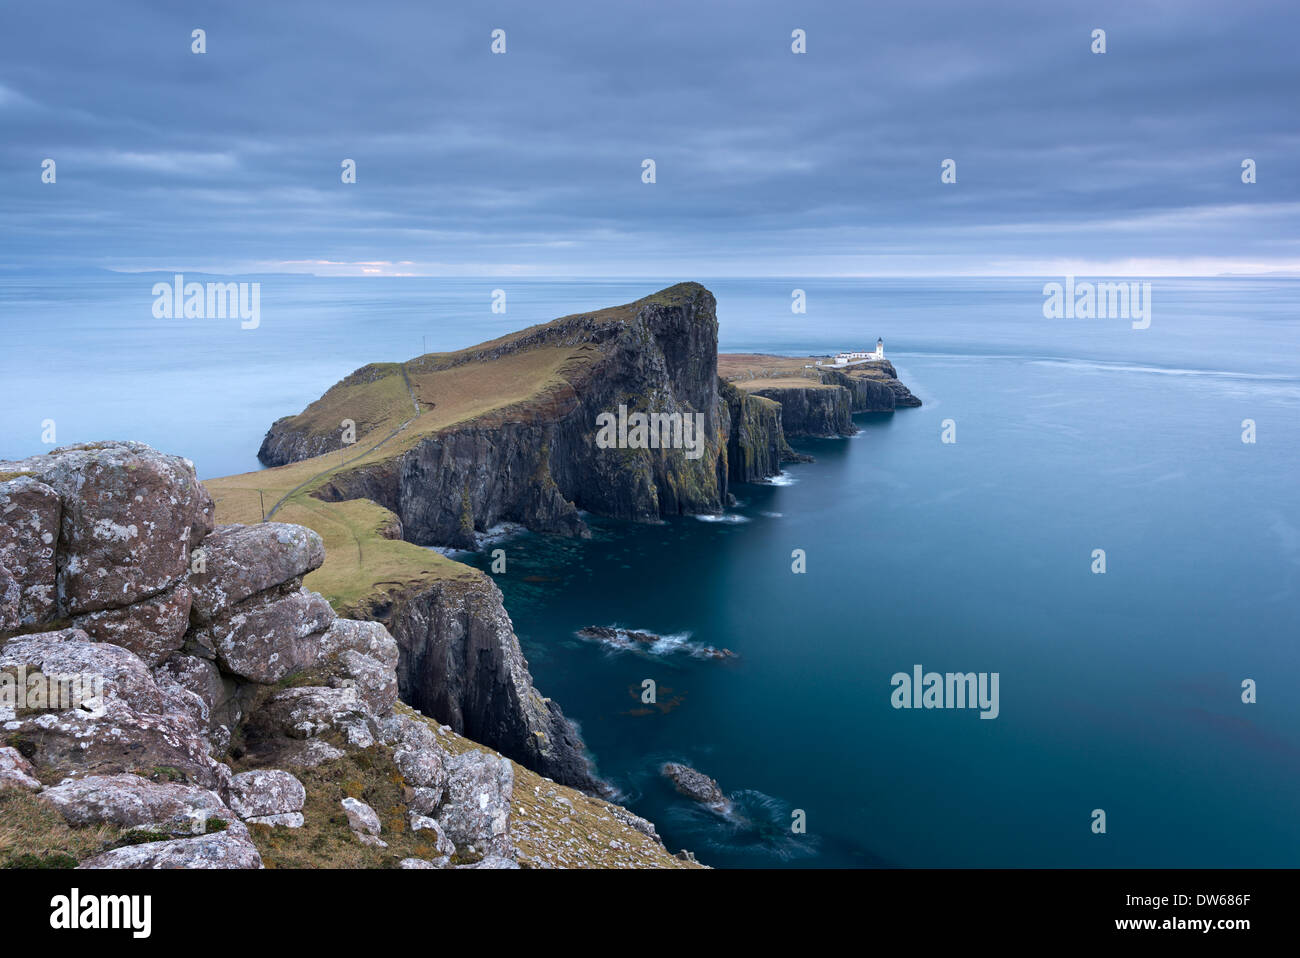 Neist Point, the most westerly point on the Isle of Skye, Inner Hebrides, Scotland. Winter (December) 2013. Stock Photo